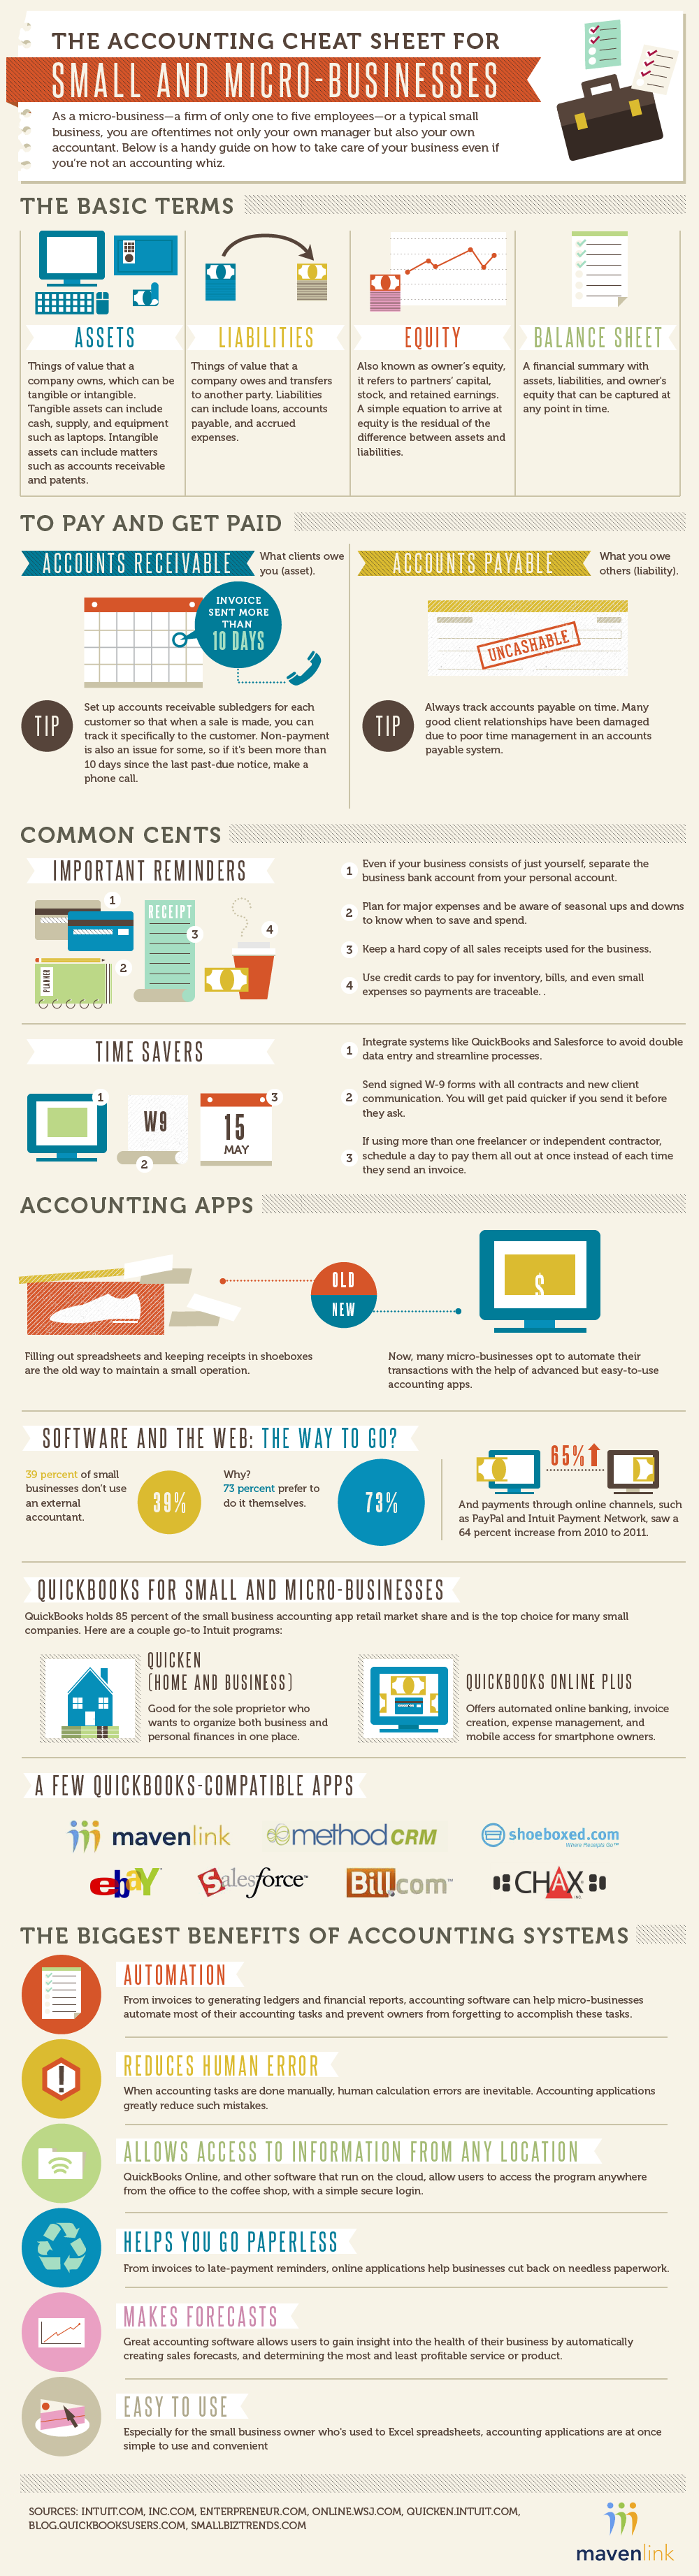 The Accounting Cheat Sheet for Small & Micro-Businesses ...